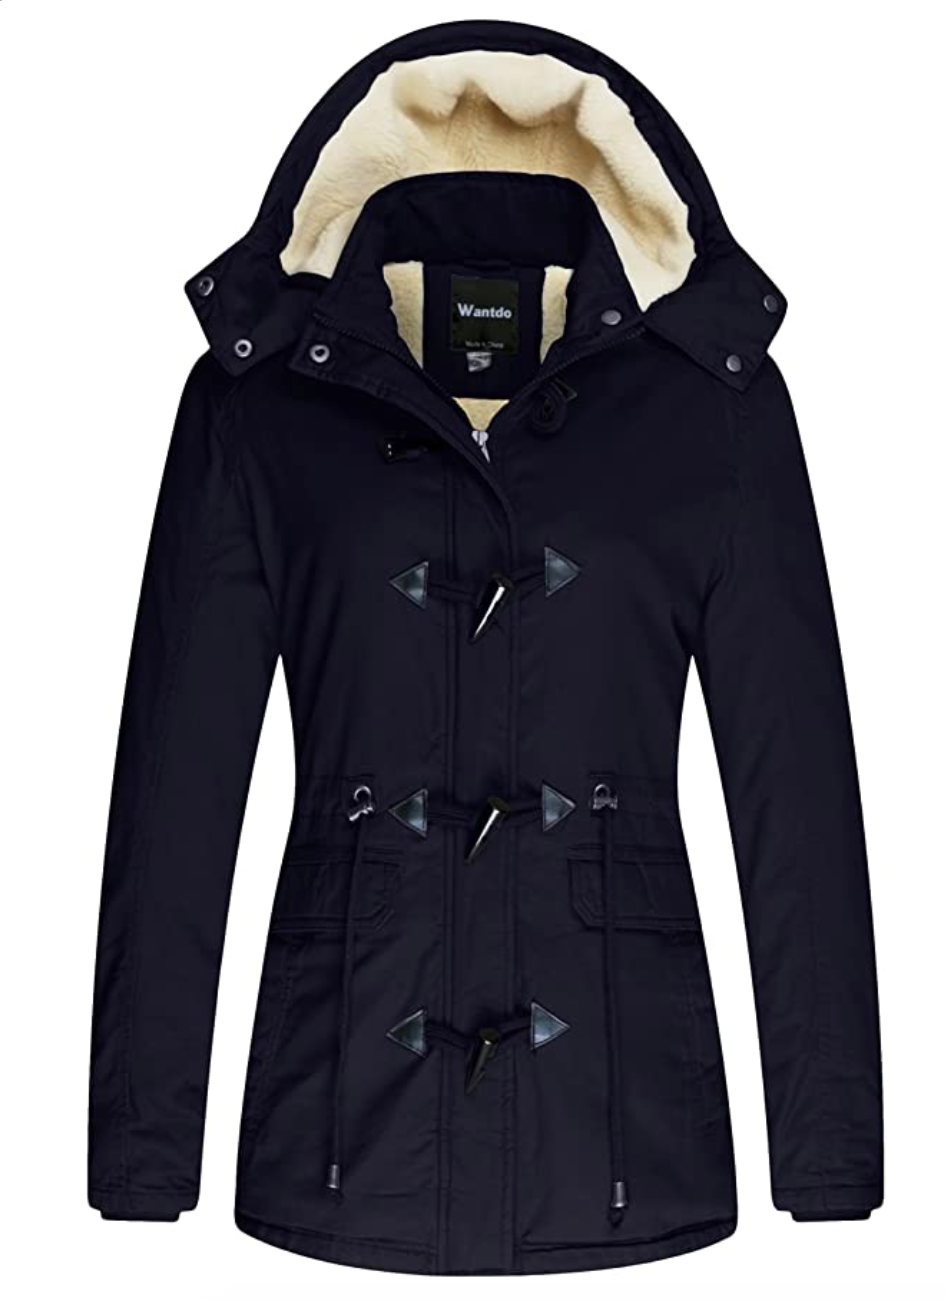 Wantdo Women's Winter Coat Cotton Parka Jacket. Image via Amazon.